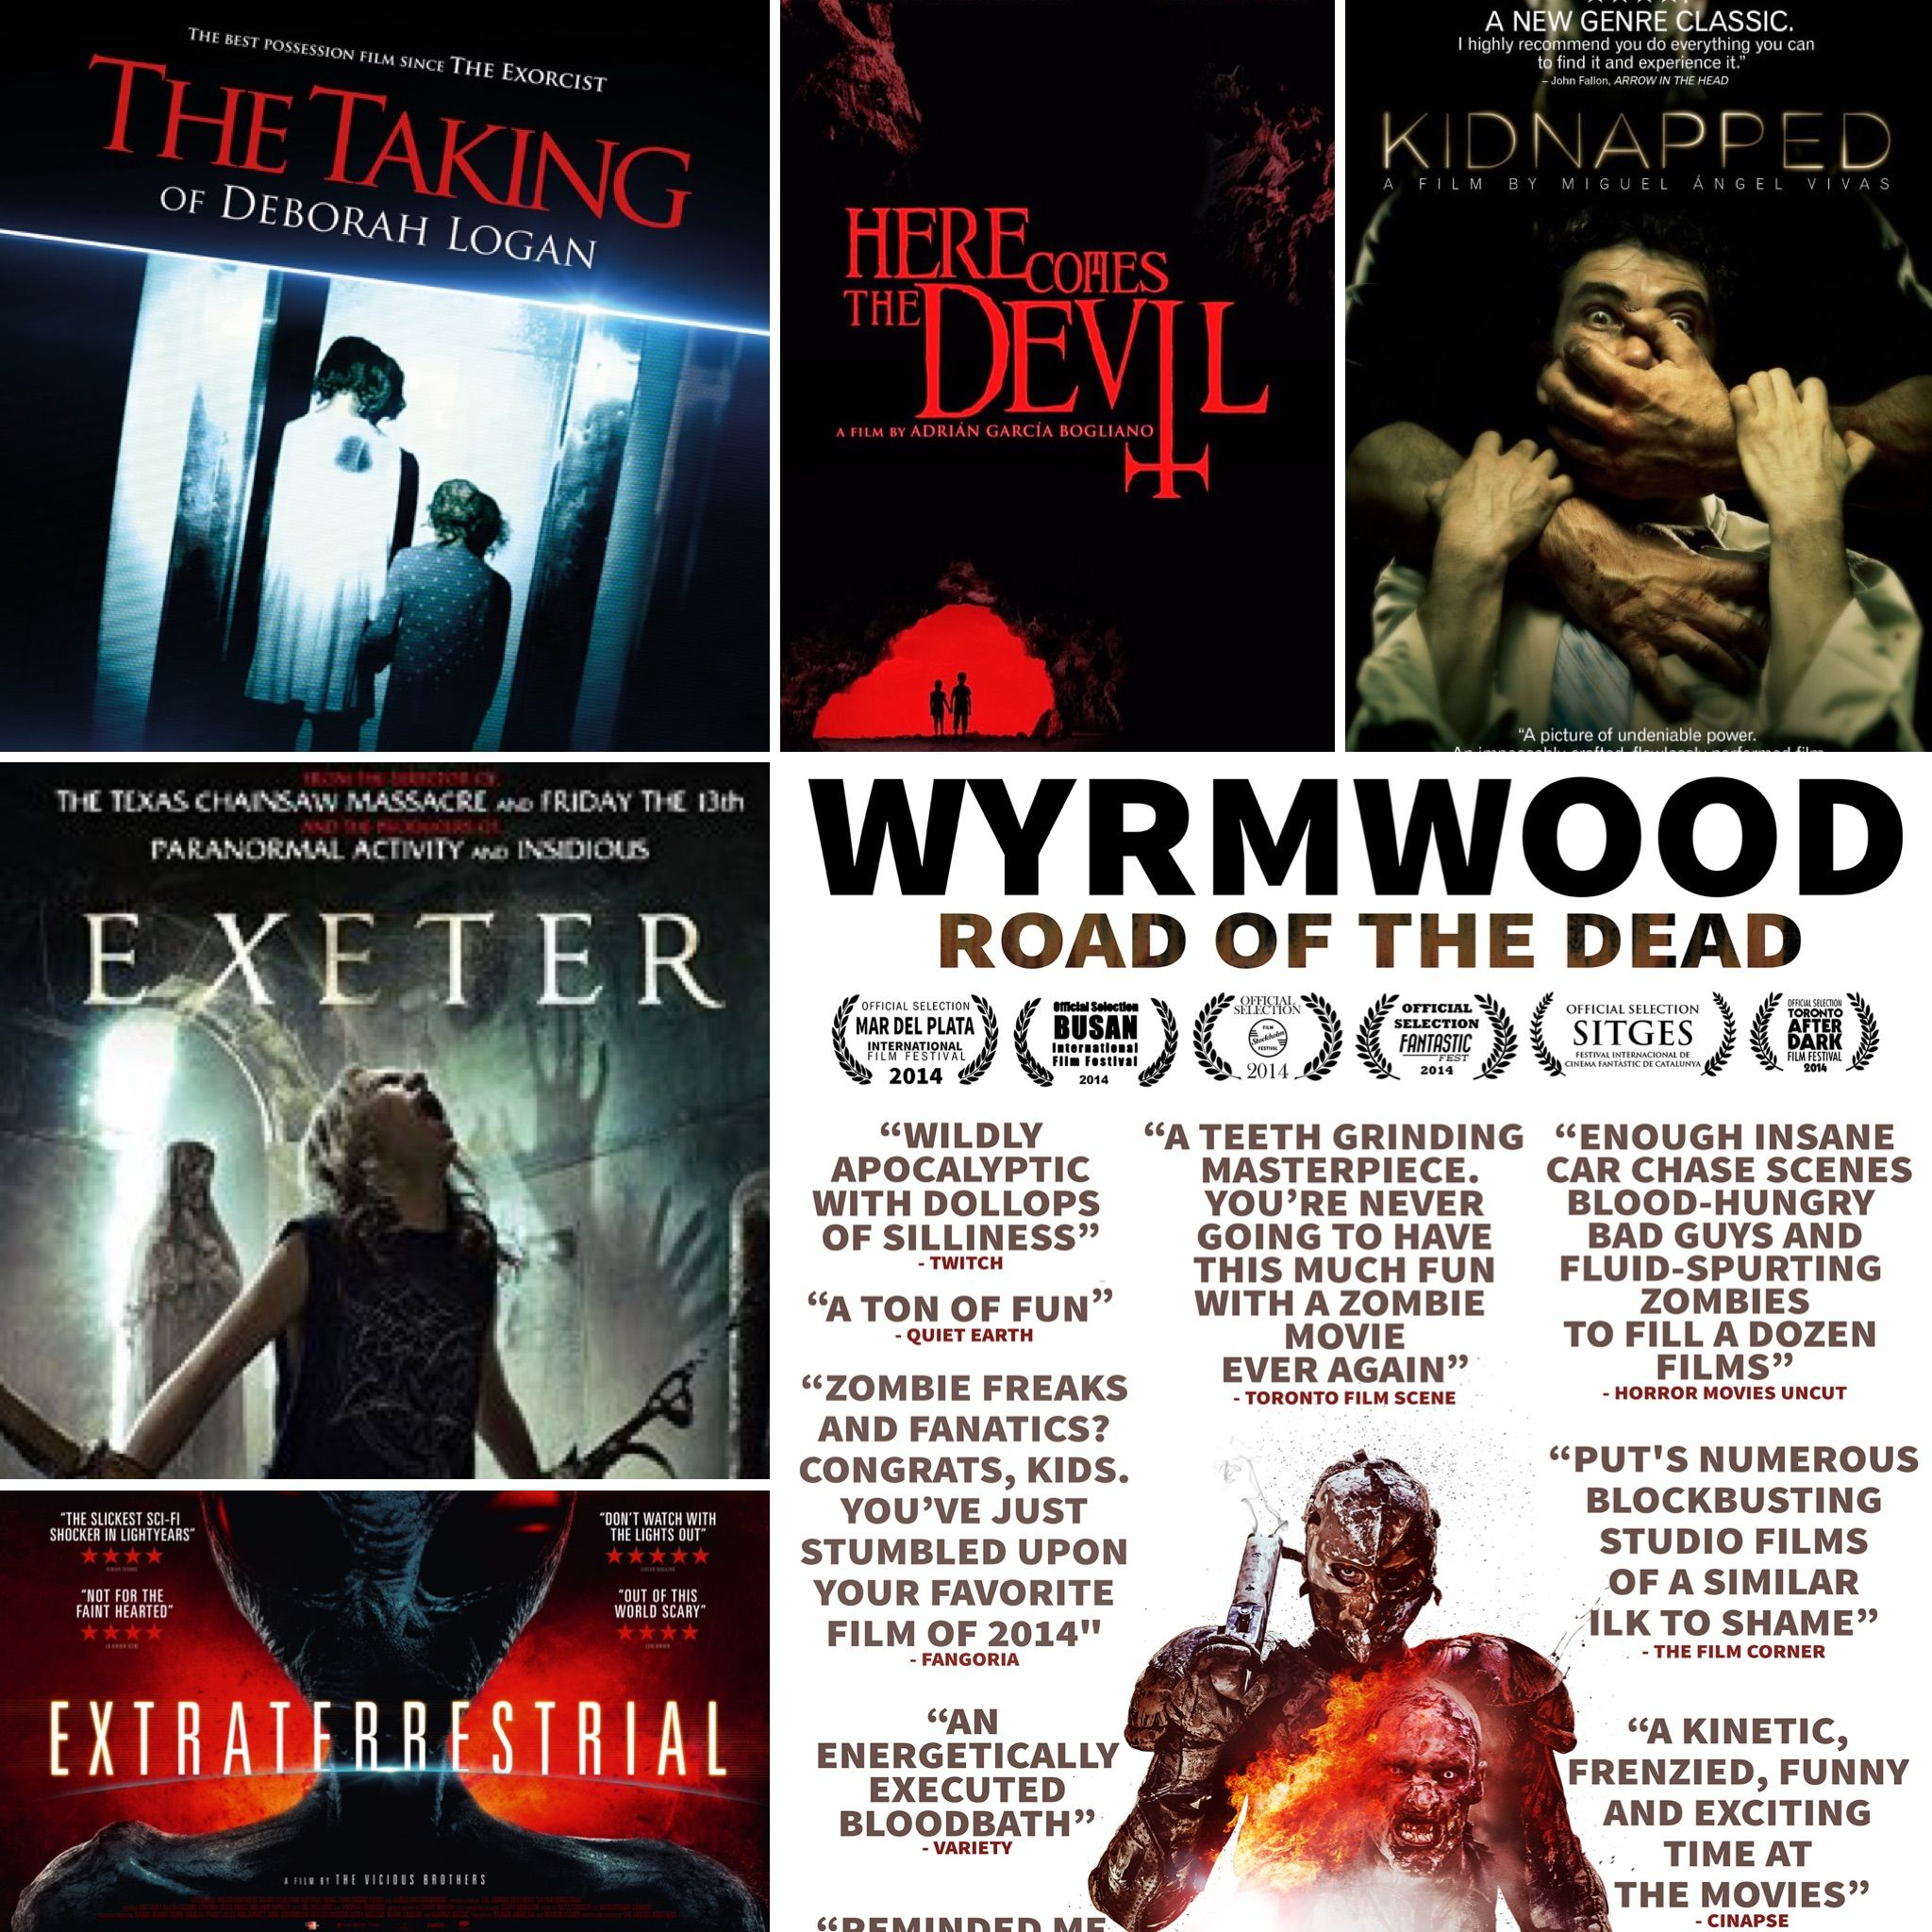 netflix offers the horror fan plenty of good scares heres 20 that you may have missed but should watch these are the best horror movies on netflix